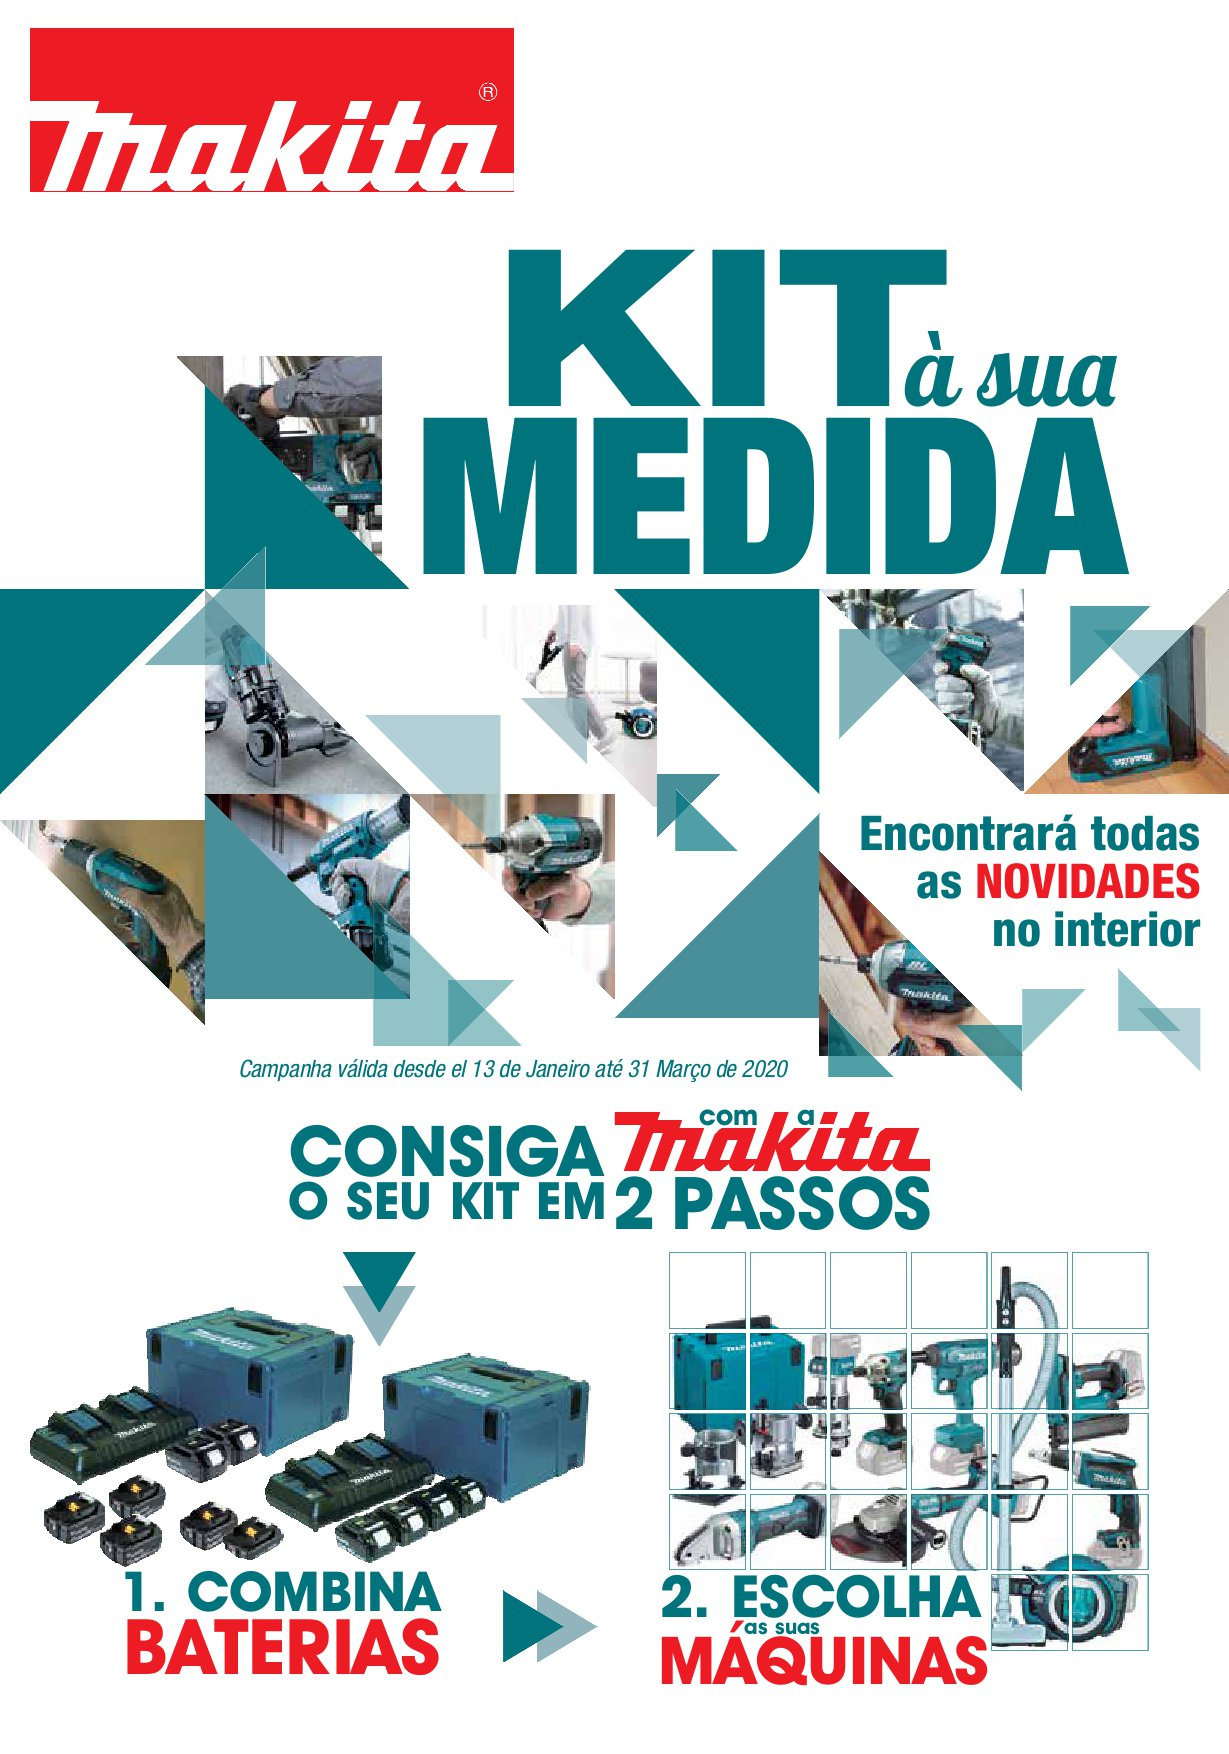 MAKITA KIT A MEDIDA